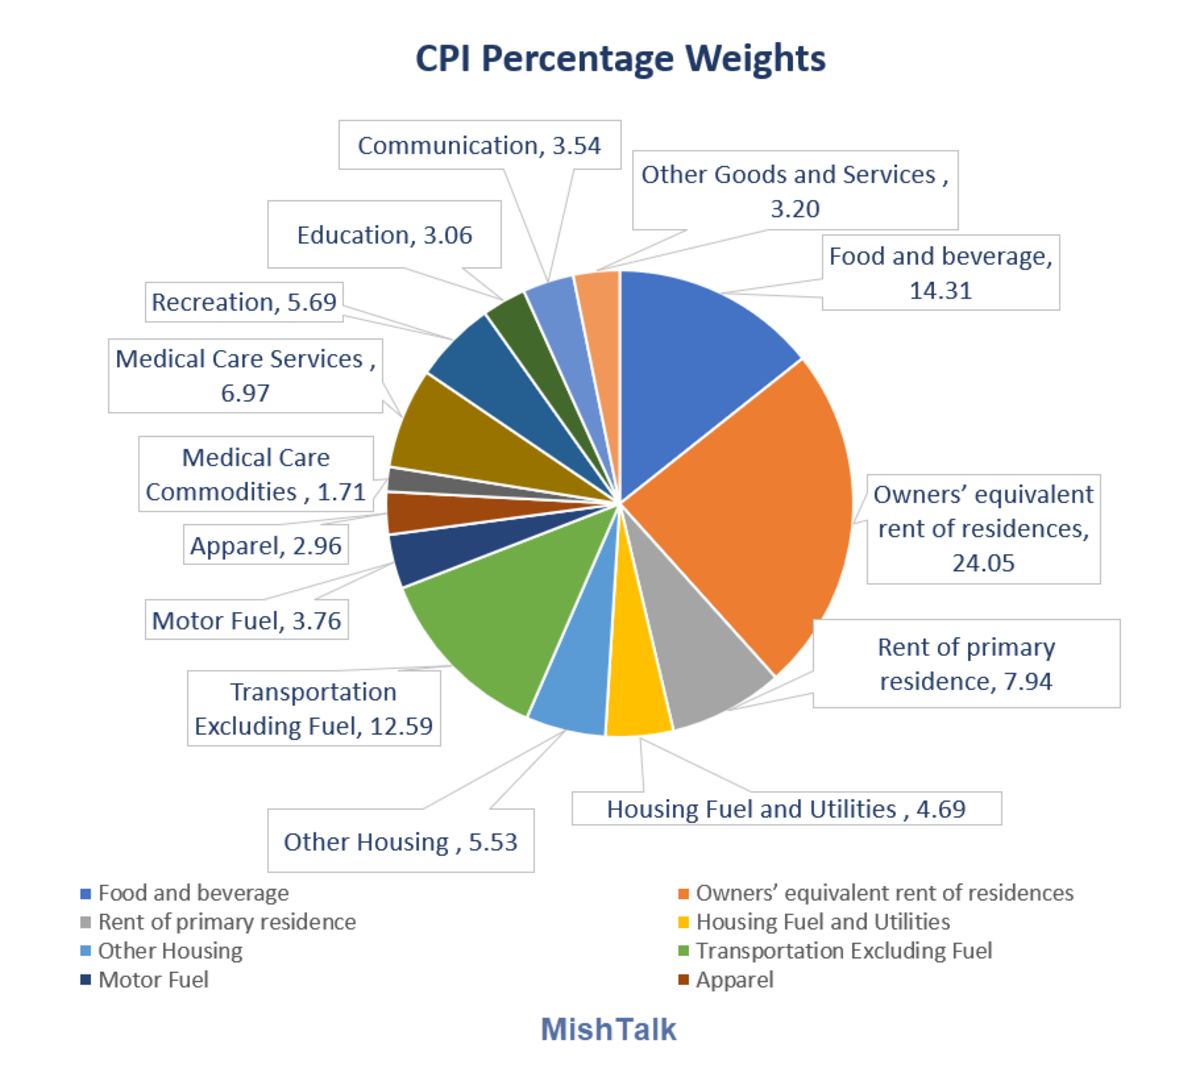 CPI percentage weights 2020